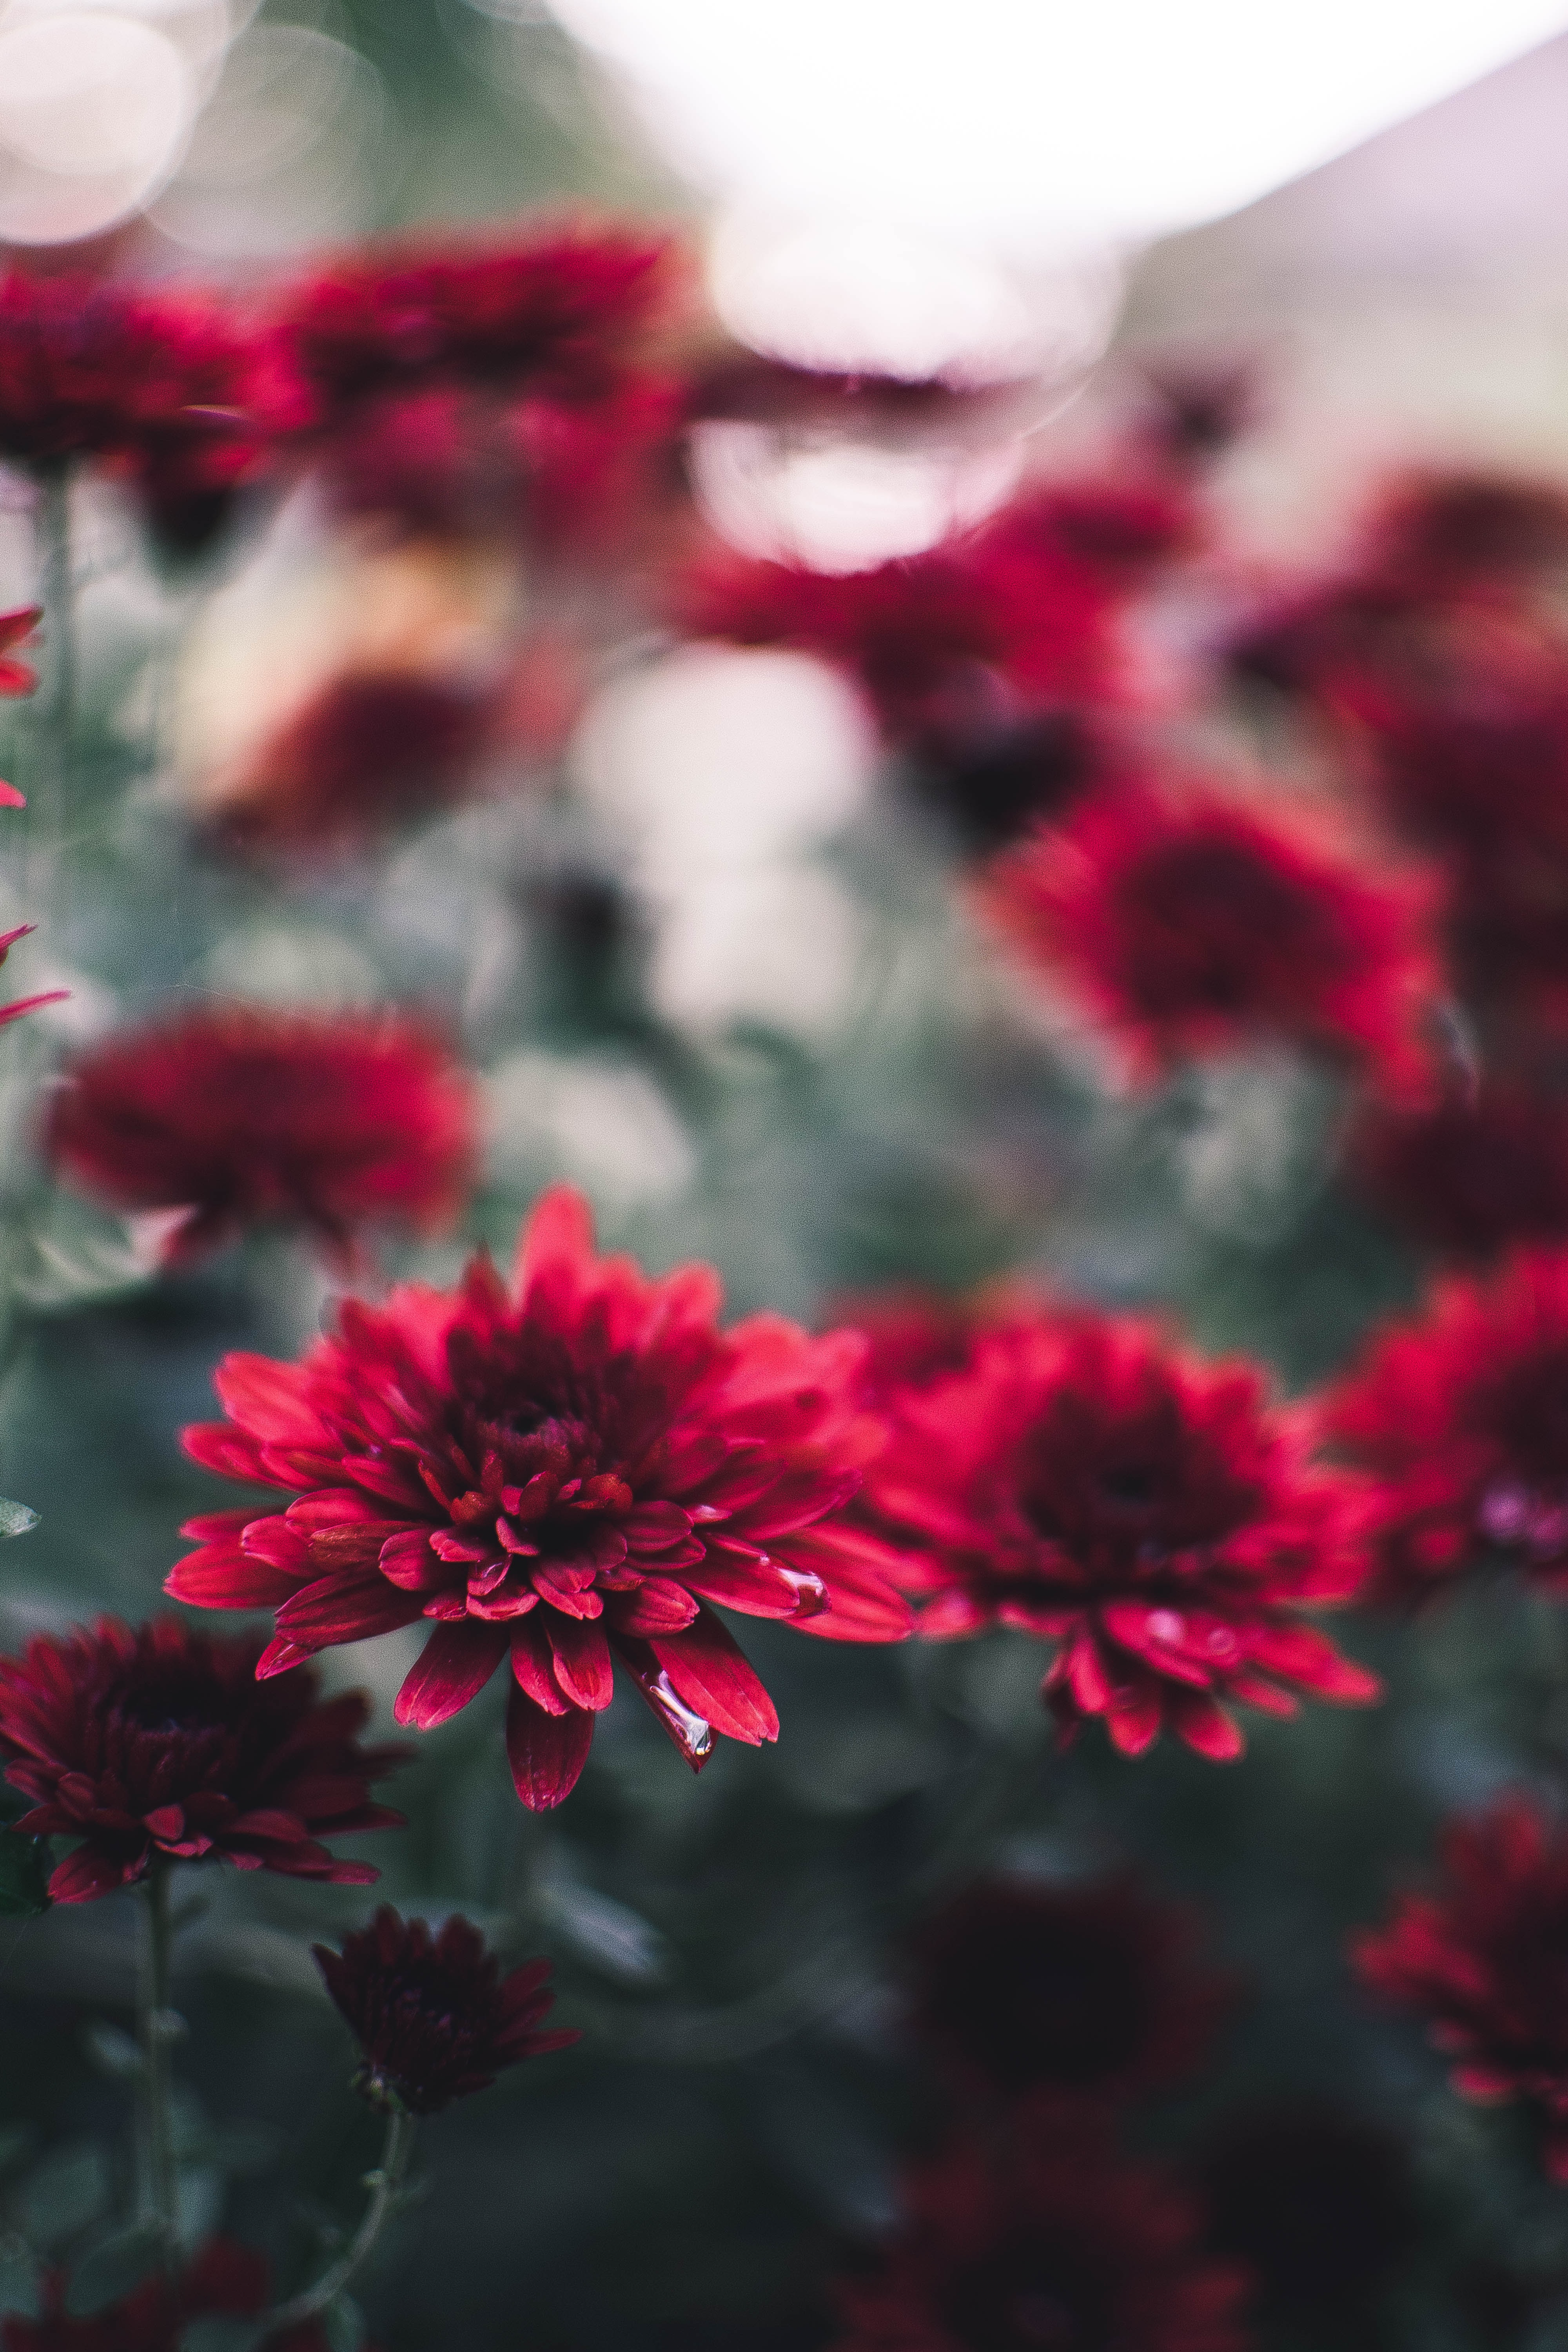 93598 download wallpaper Flowers, Chrysanthemum, Wet, Close-Up screensavers and pictures for free